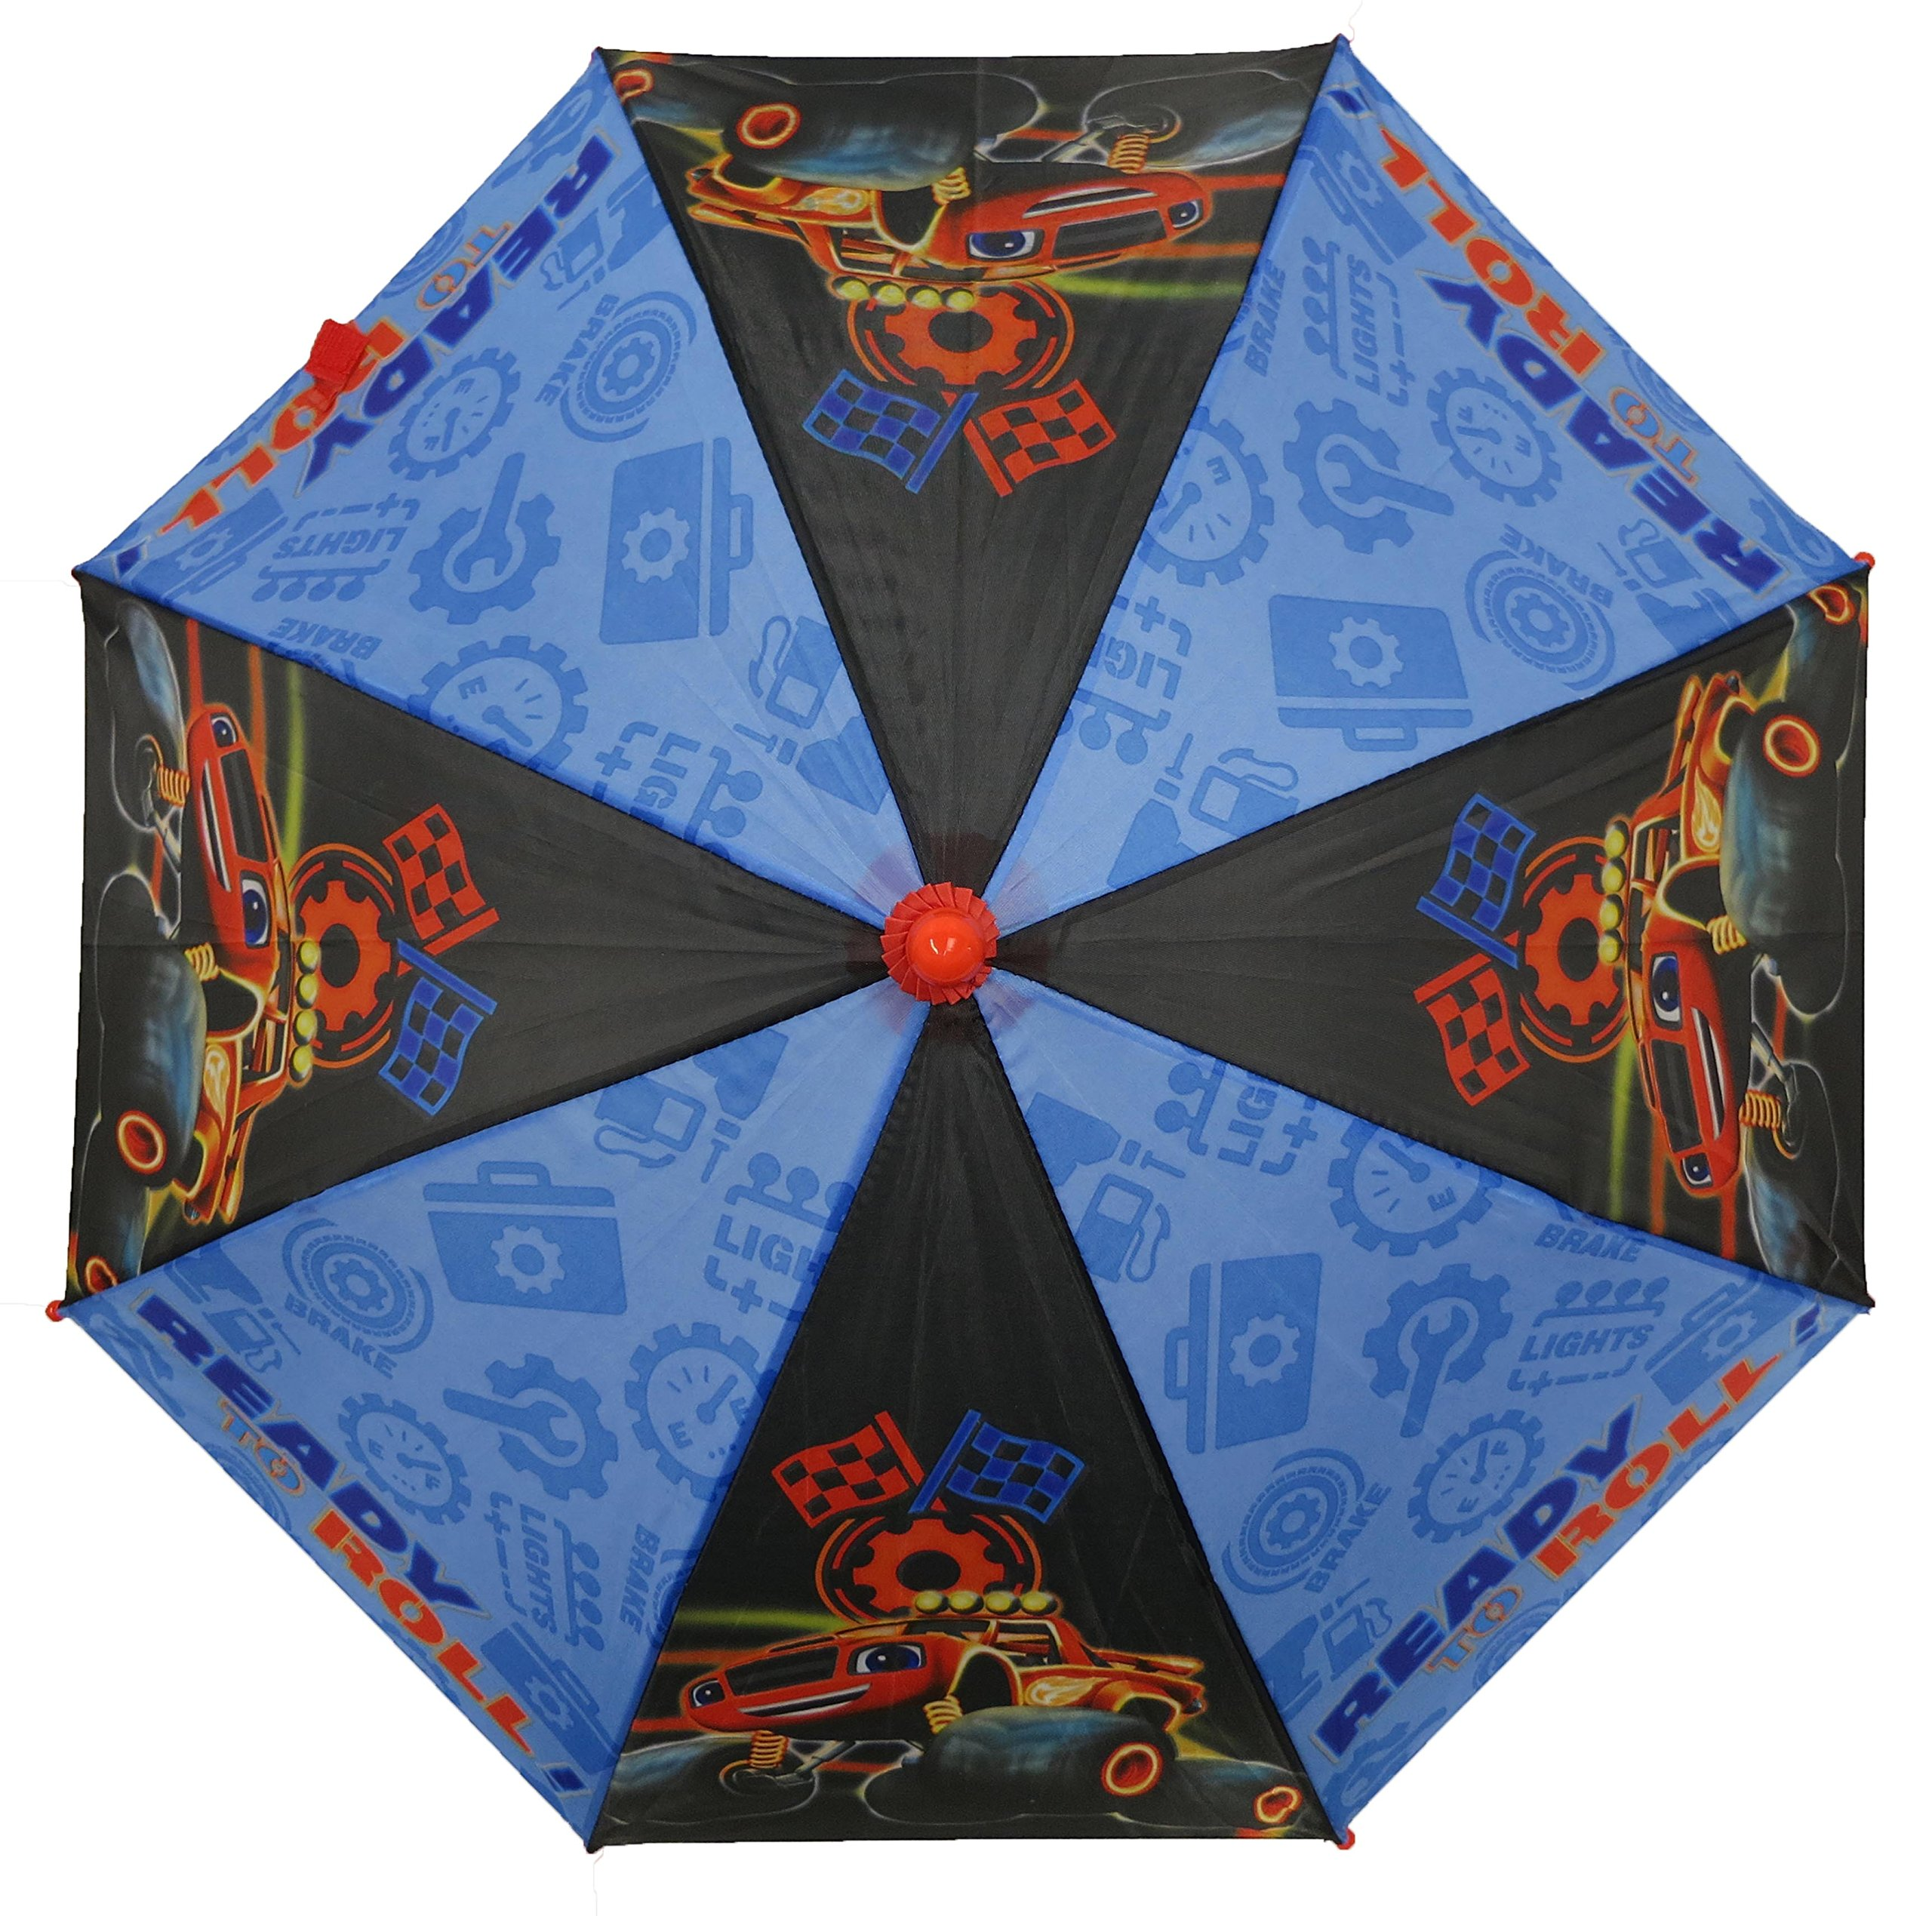 Nickelodeon Little Boys Blaze Character Rainwear Umbrella, Black/Blue, Age 3-7 by Nickelodeon (Image #3)